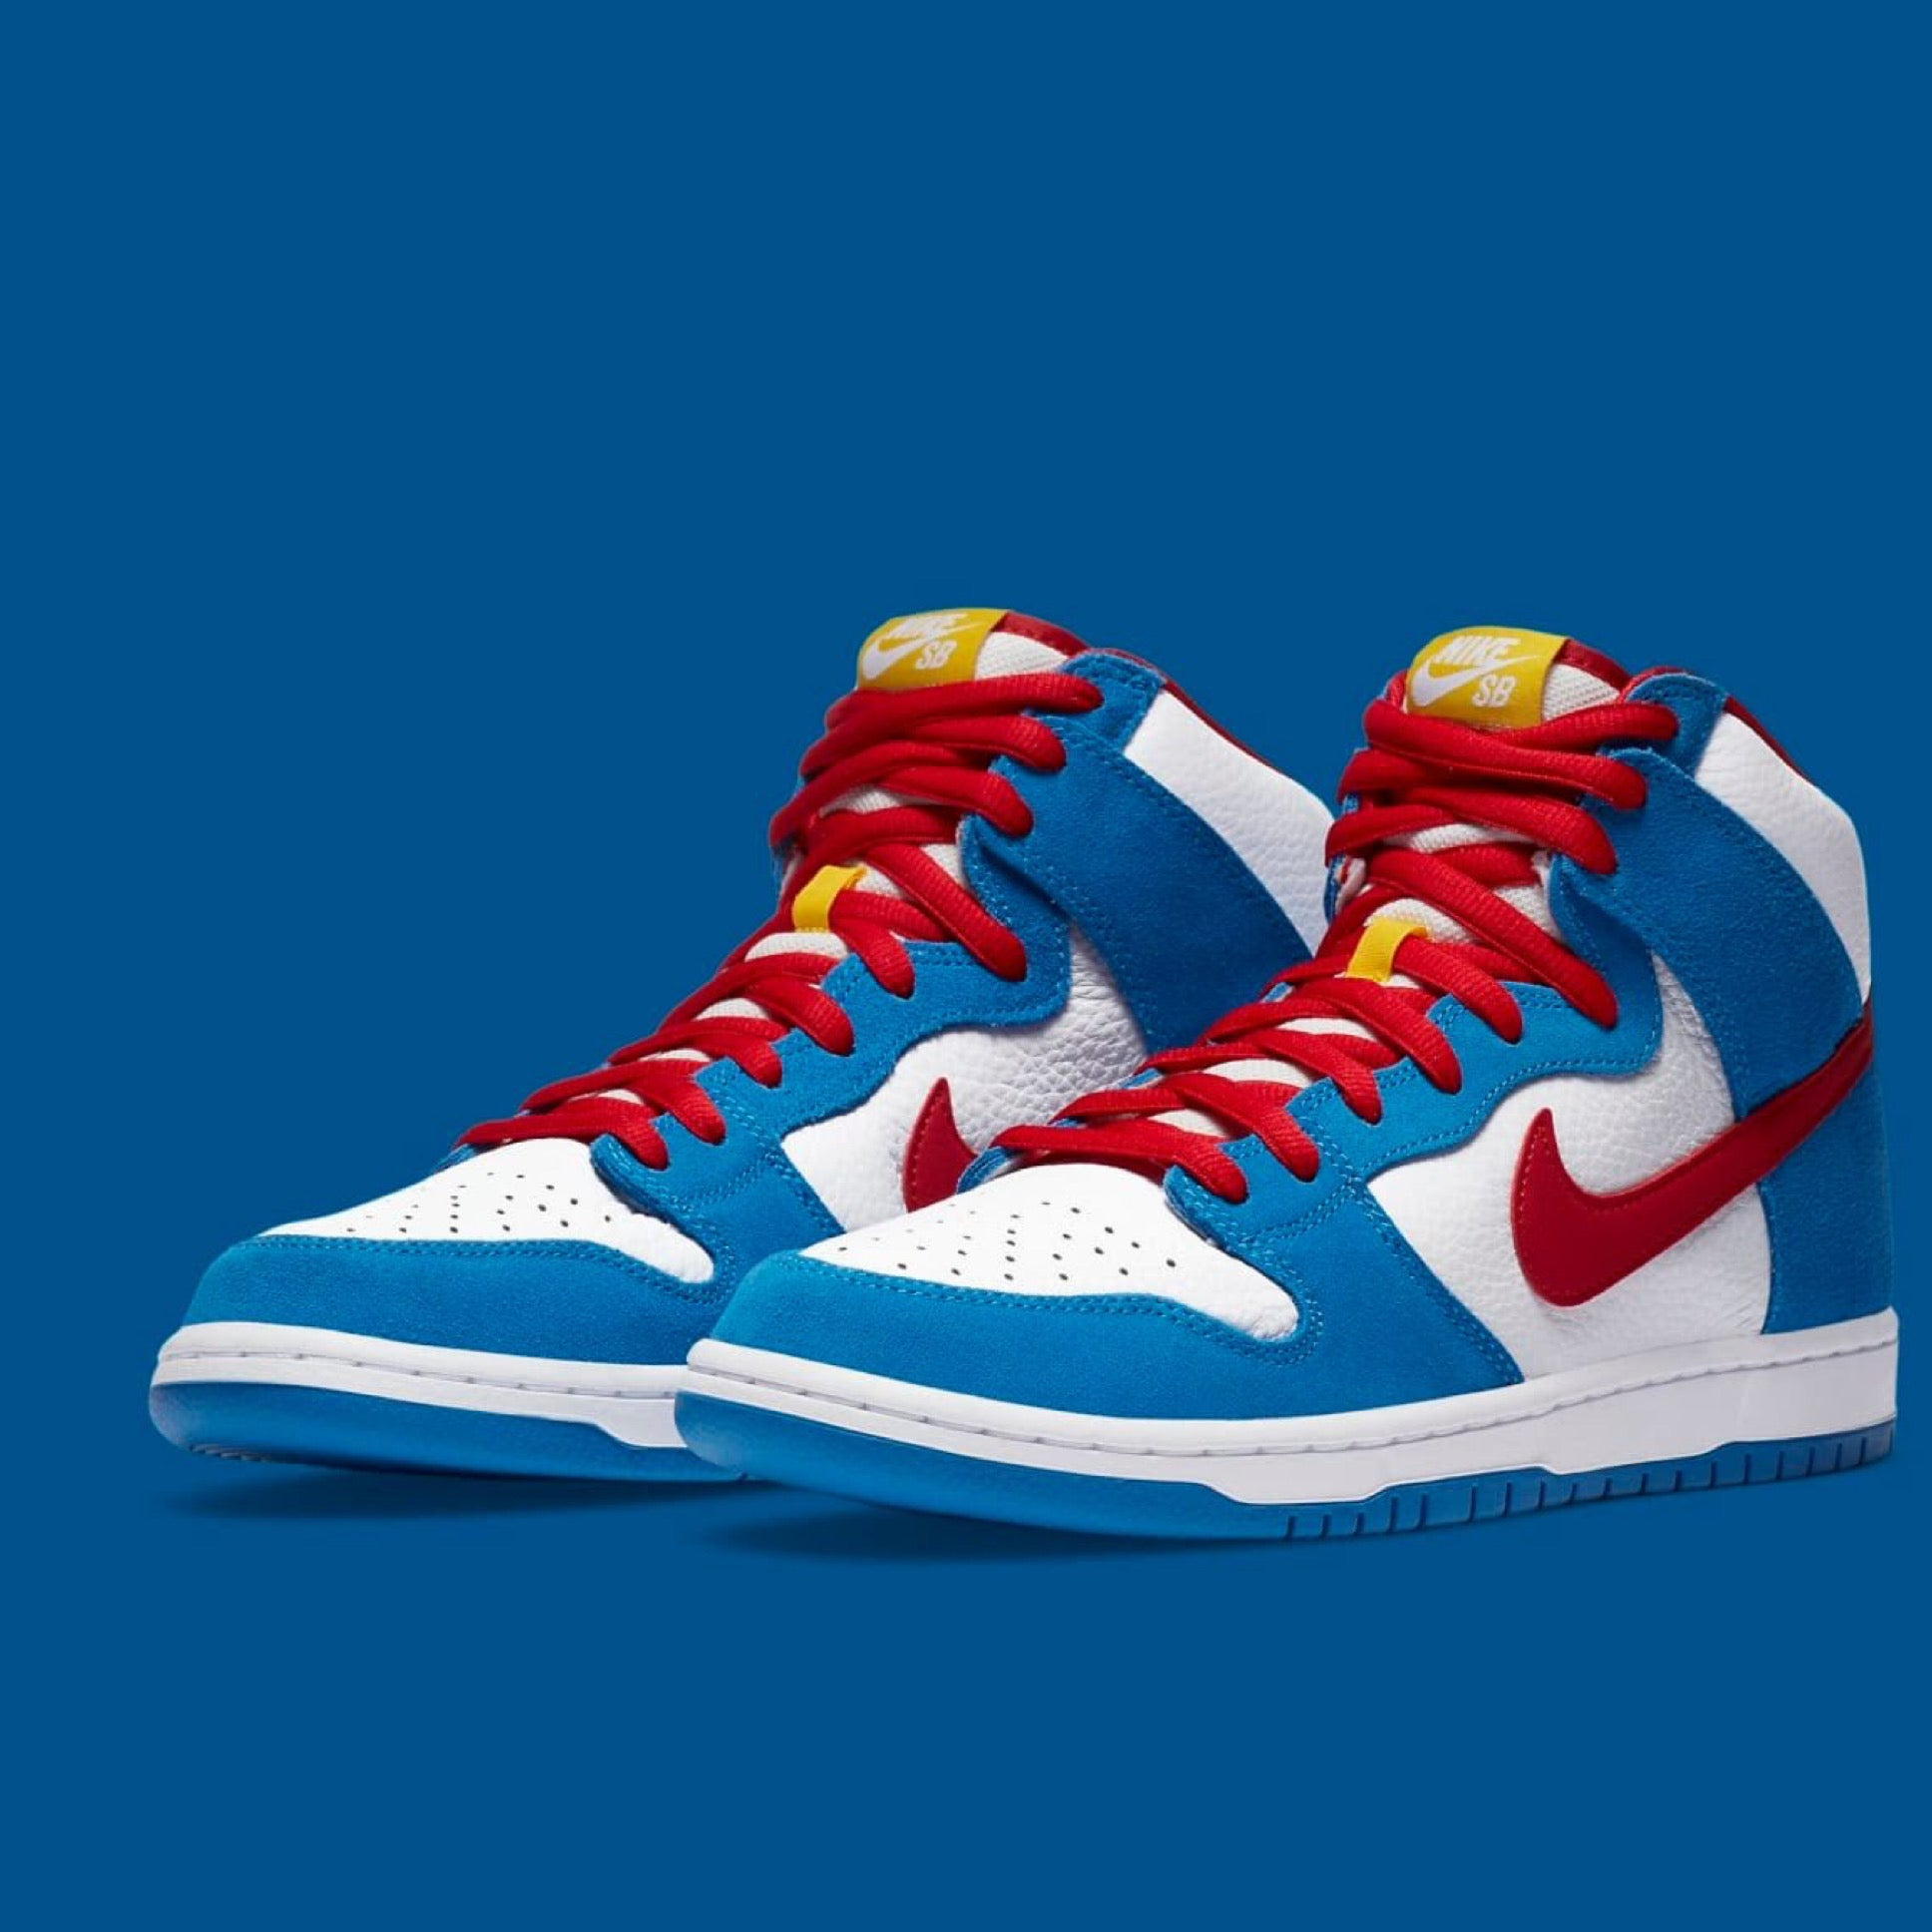 Nike SB Orange Label Doraemon Dunk Raffle